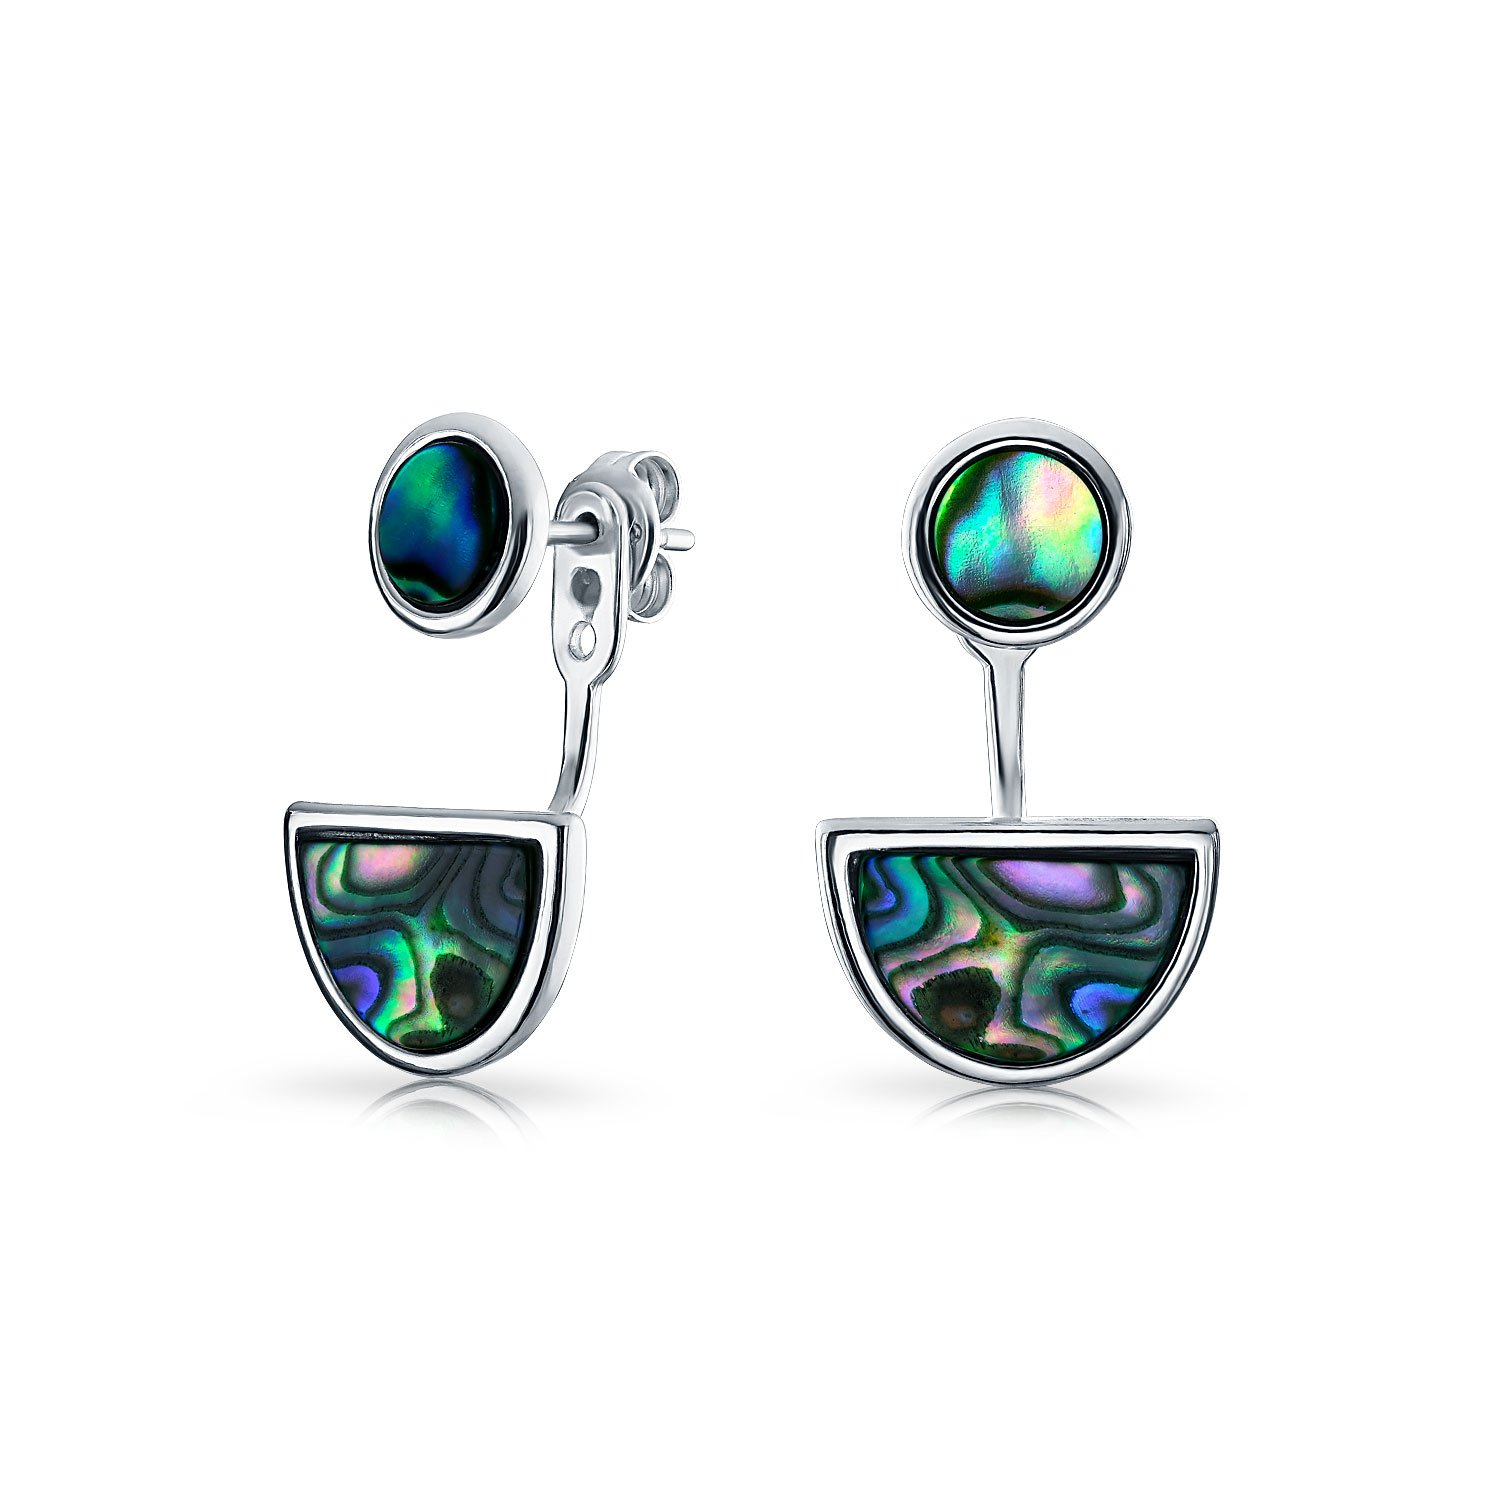 Geometric Circle Disc Half Moon Abalone Shell Front Back Earrings With Stud Removable Jacket For Women Sterling Silver by Bling Jewelry